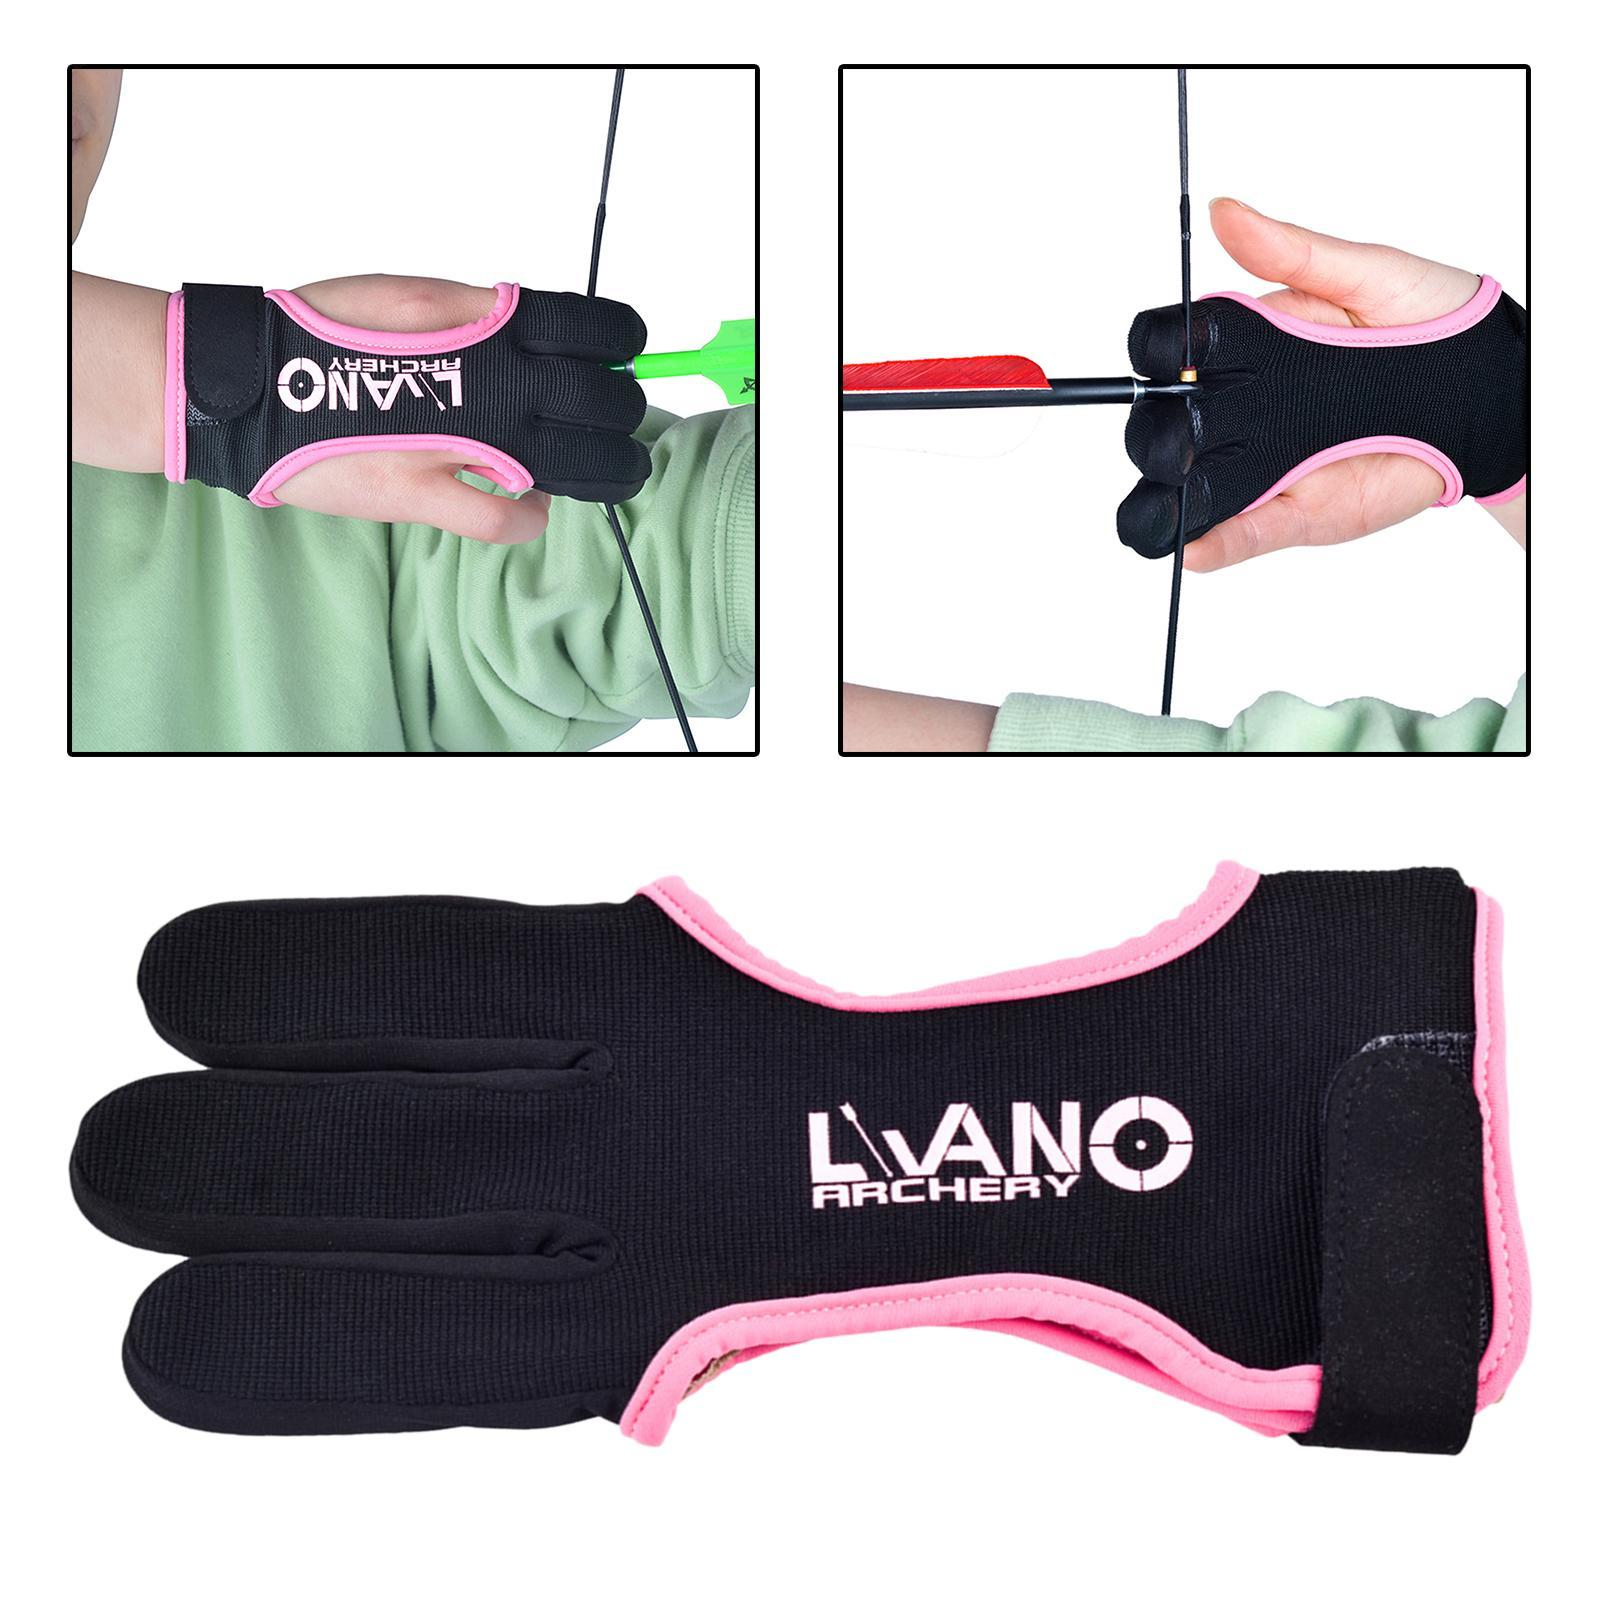 thumbnail 33 - Archery Glove for Recurve & Compound Bow 3 Finger Guard for Women Men Youth